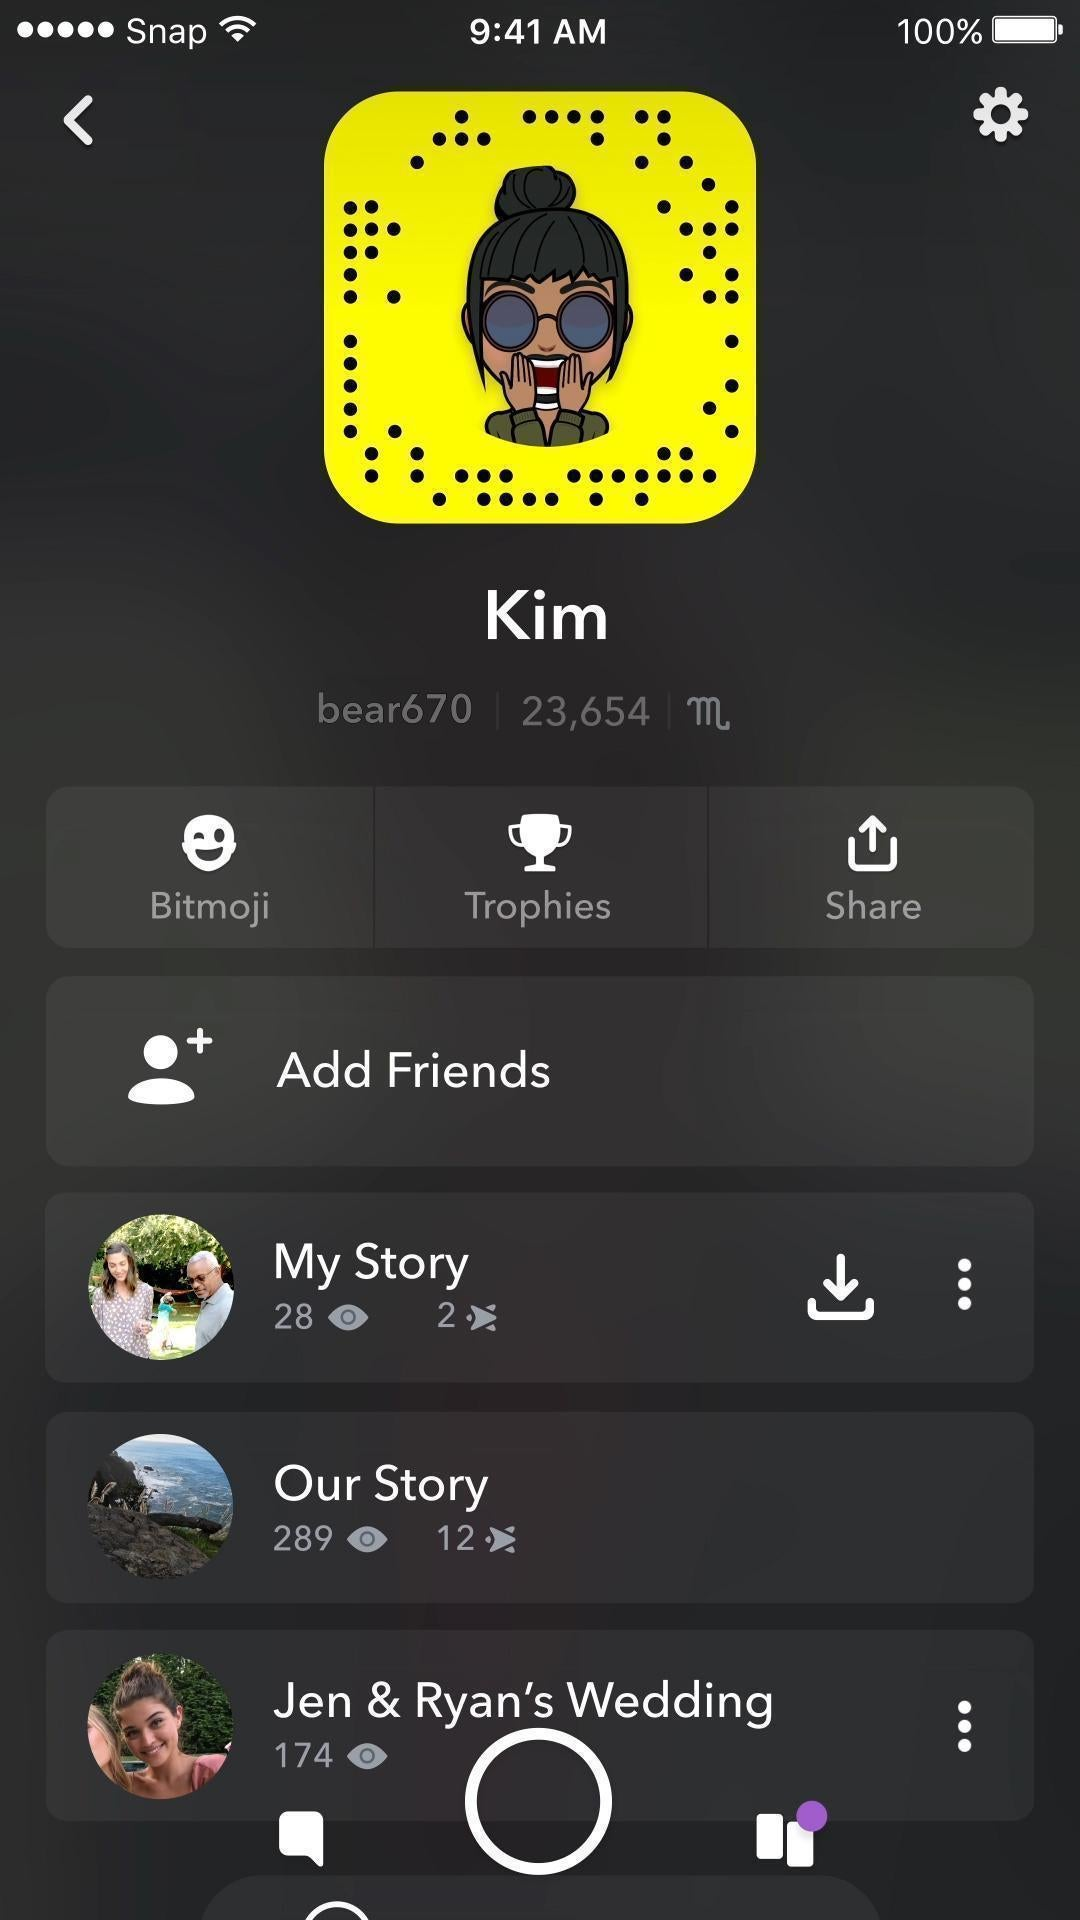 Snapchat update: Why reverting back to the old version of the app